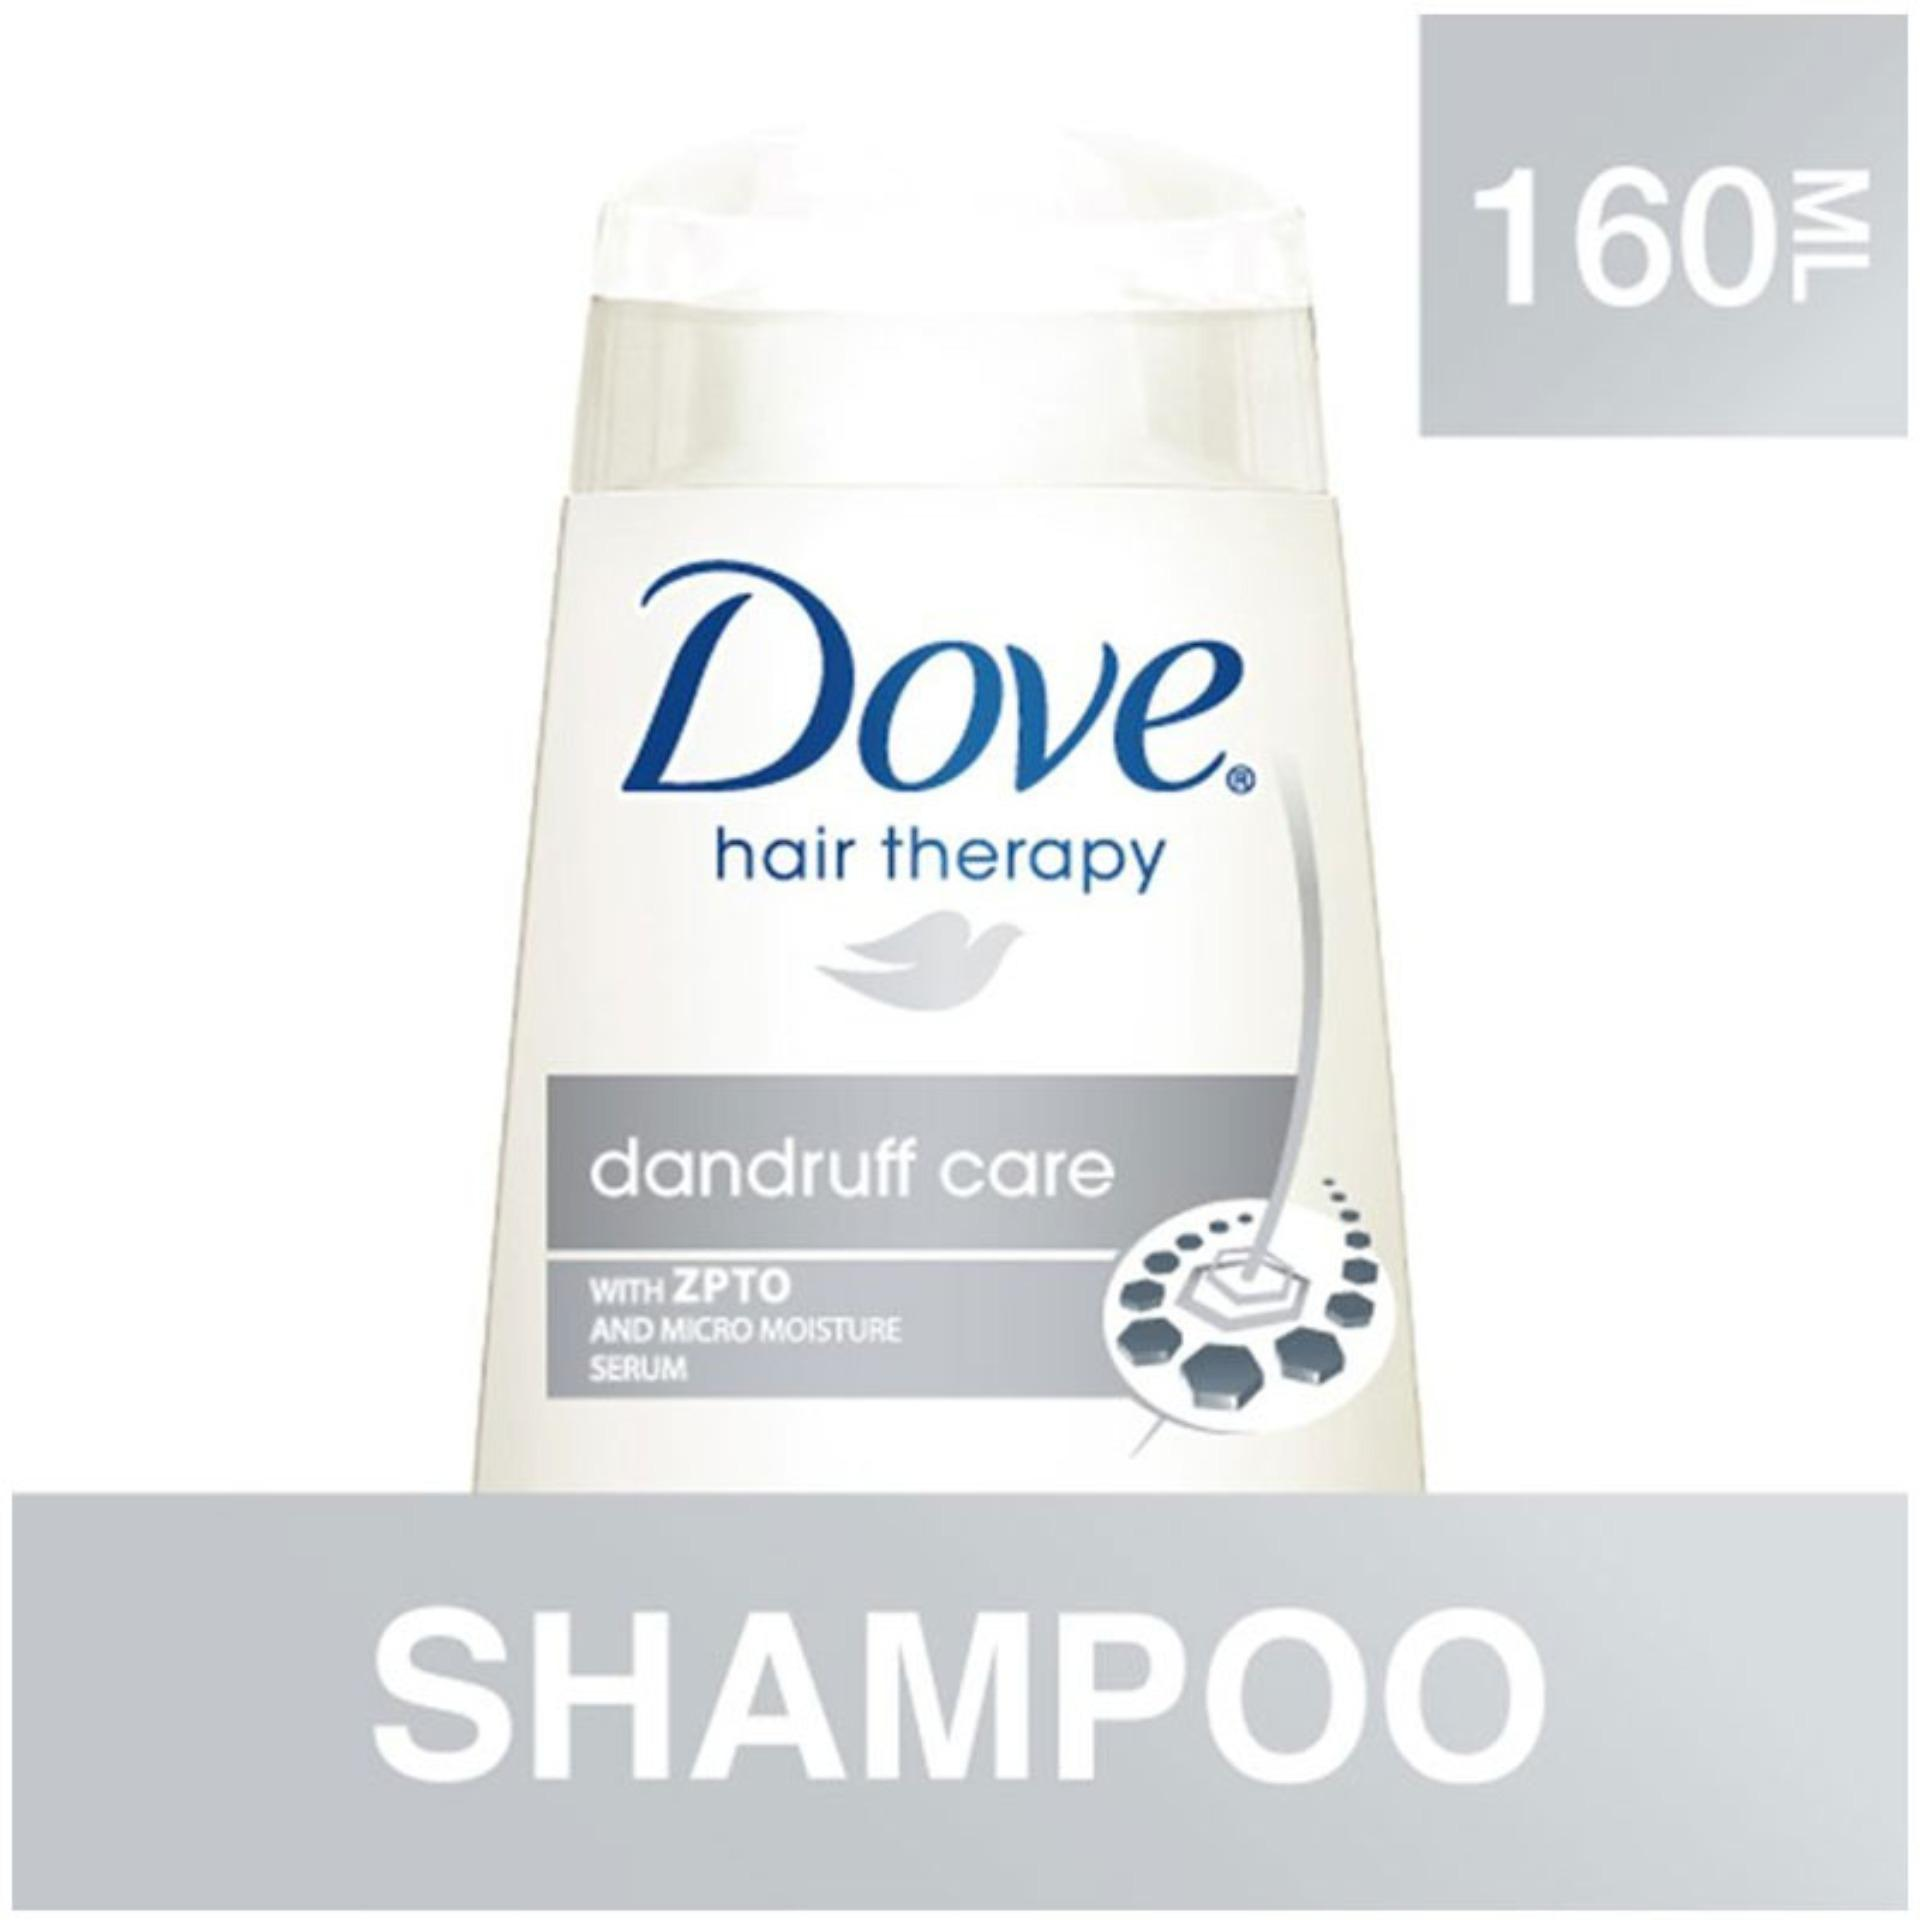 project dove shampoo Dove strives to promote confidence and self-esteem in women (and men) with various natural beauty campaigns like real beauty and the self esteem project the campaigns promote self-worth and body positivity rather than false beauty advertising.